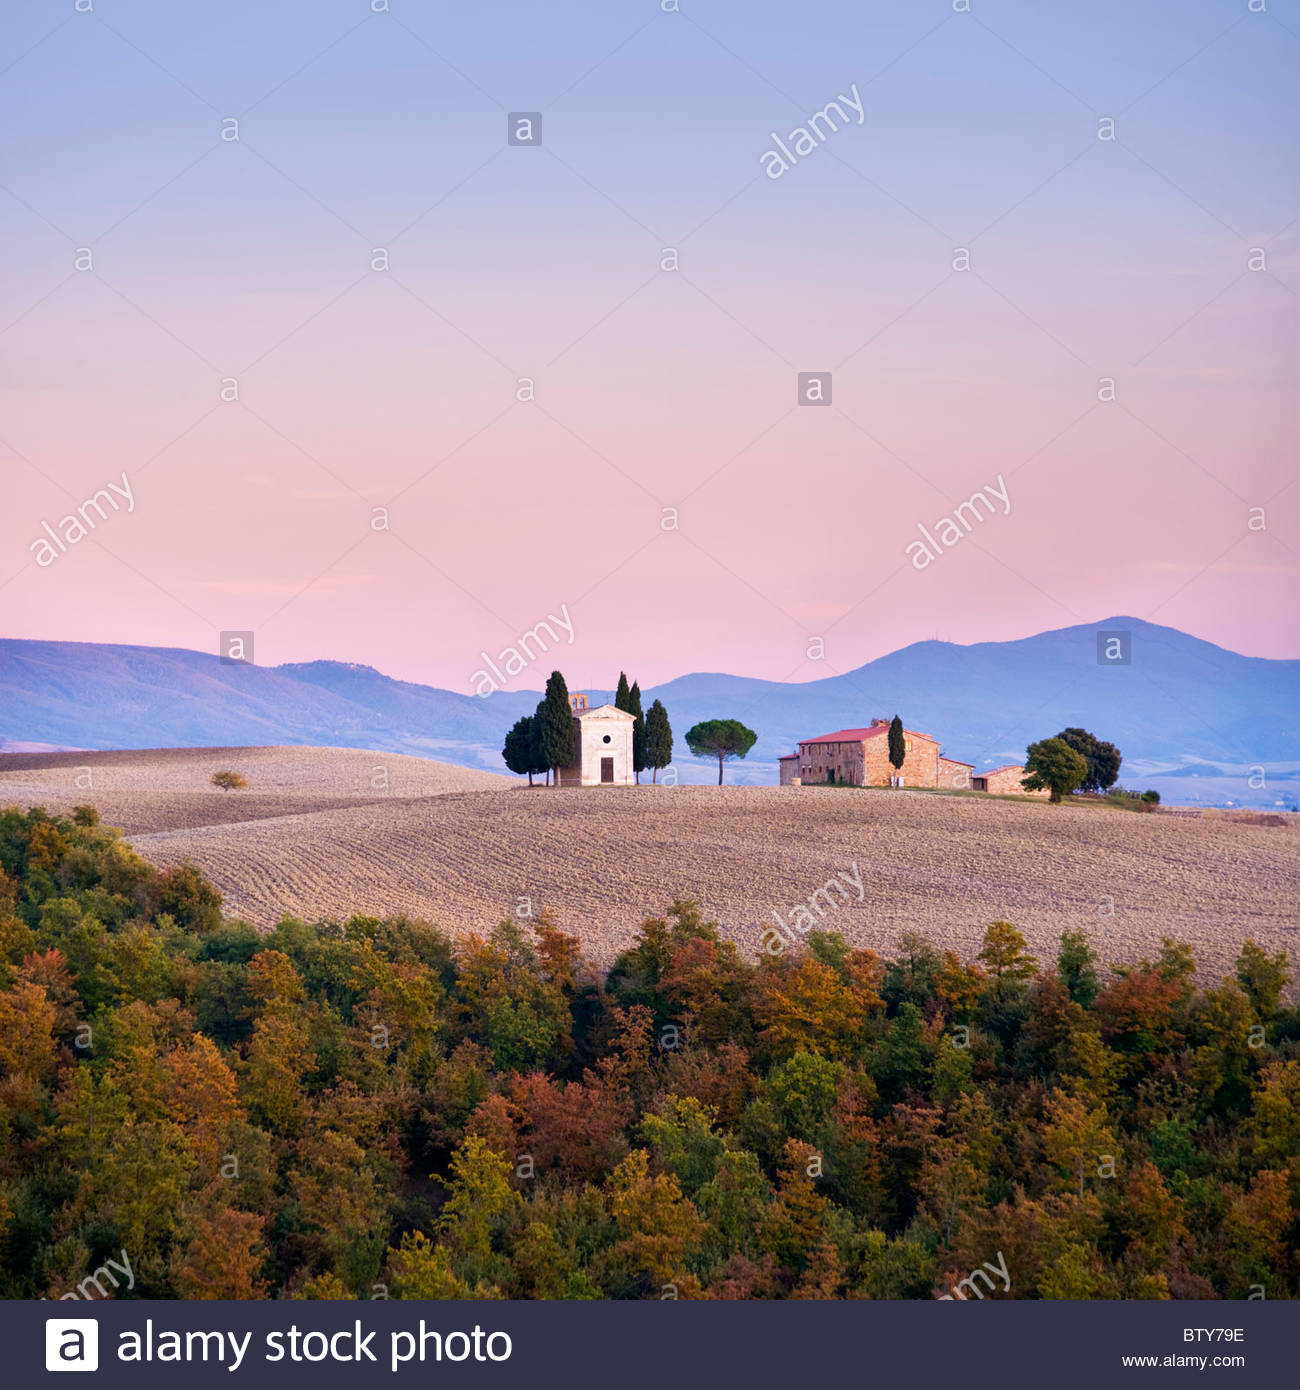 Chapel San Quirico d'Orcia, Val d'Orcia, Tuscany, Italy. - Stock Image